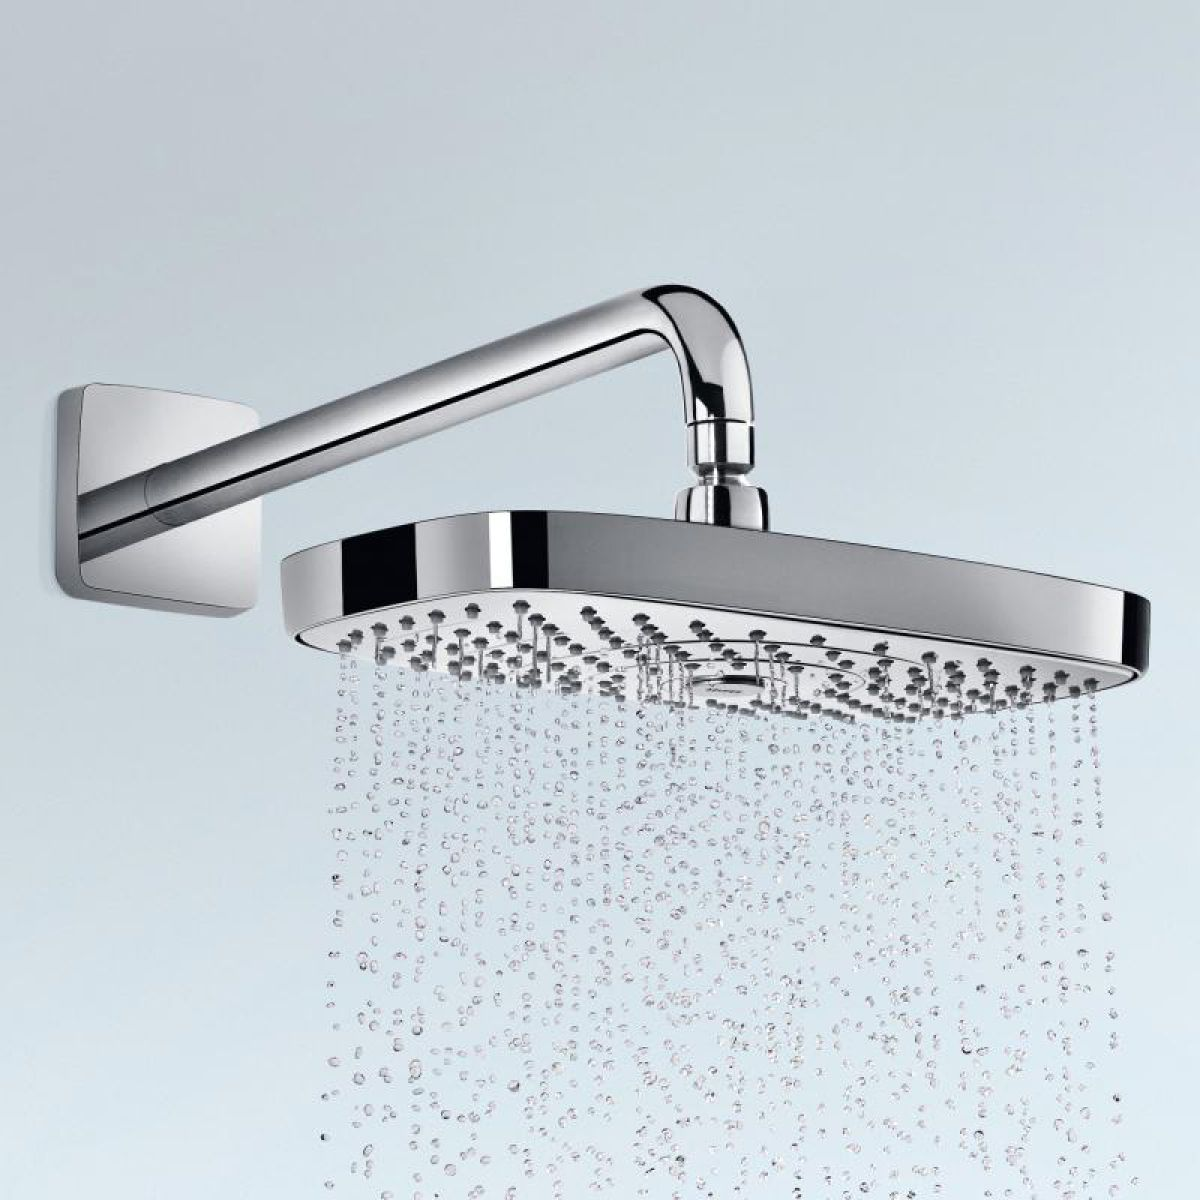 hansgrohe raindance select e 300 2jet shower head with arm uk bathrooms. Black Bedroom Furniture Sets. Home Design Ideas